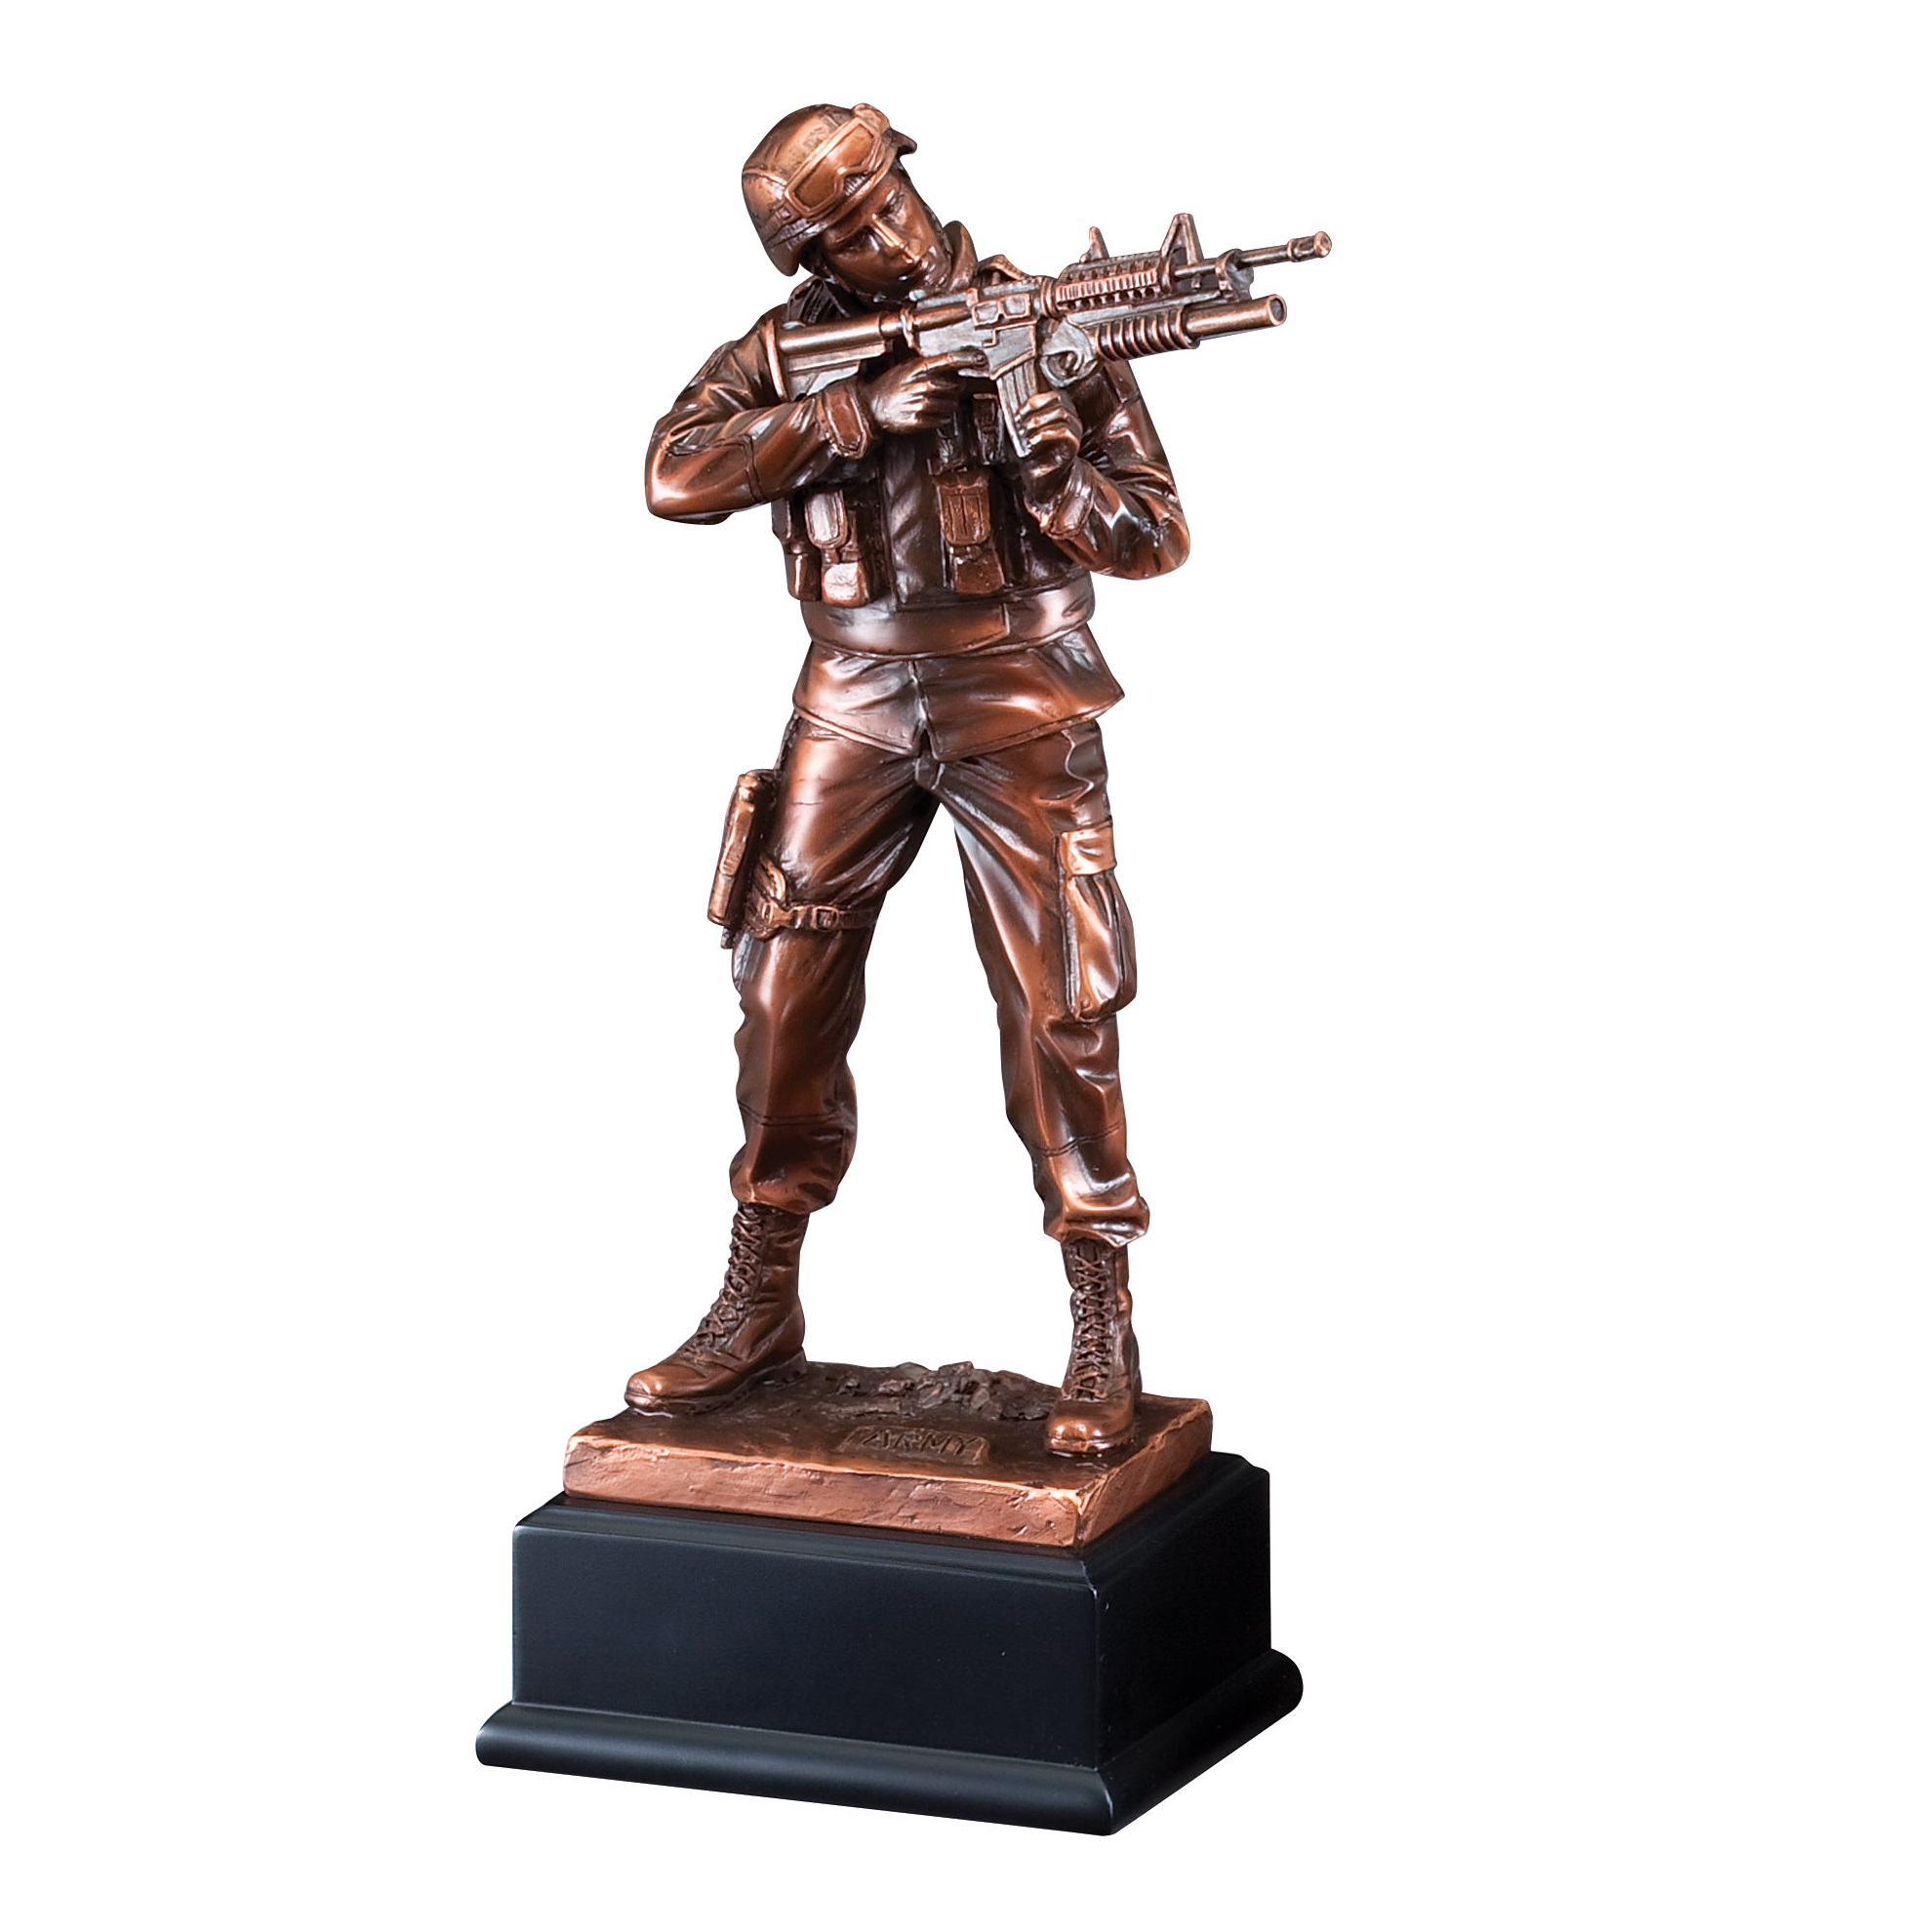 11.5 inch American army hero sculpture - RFB134